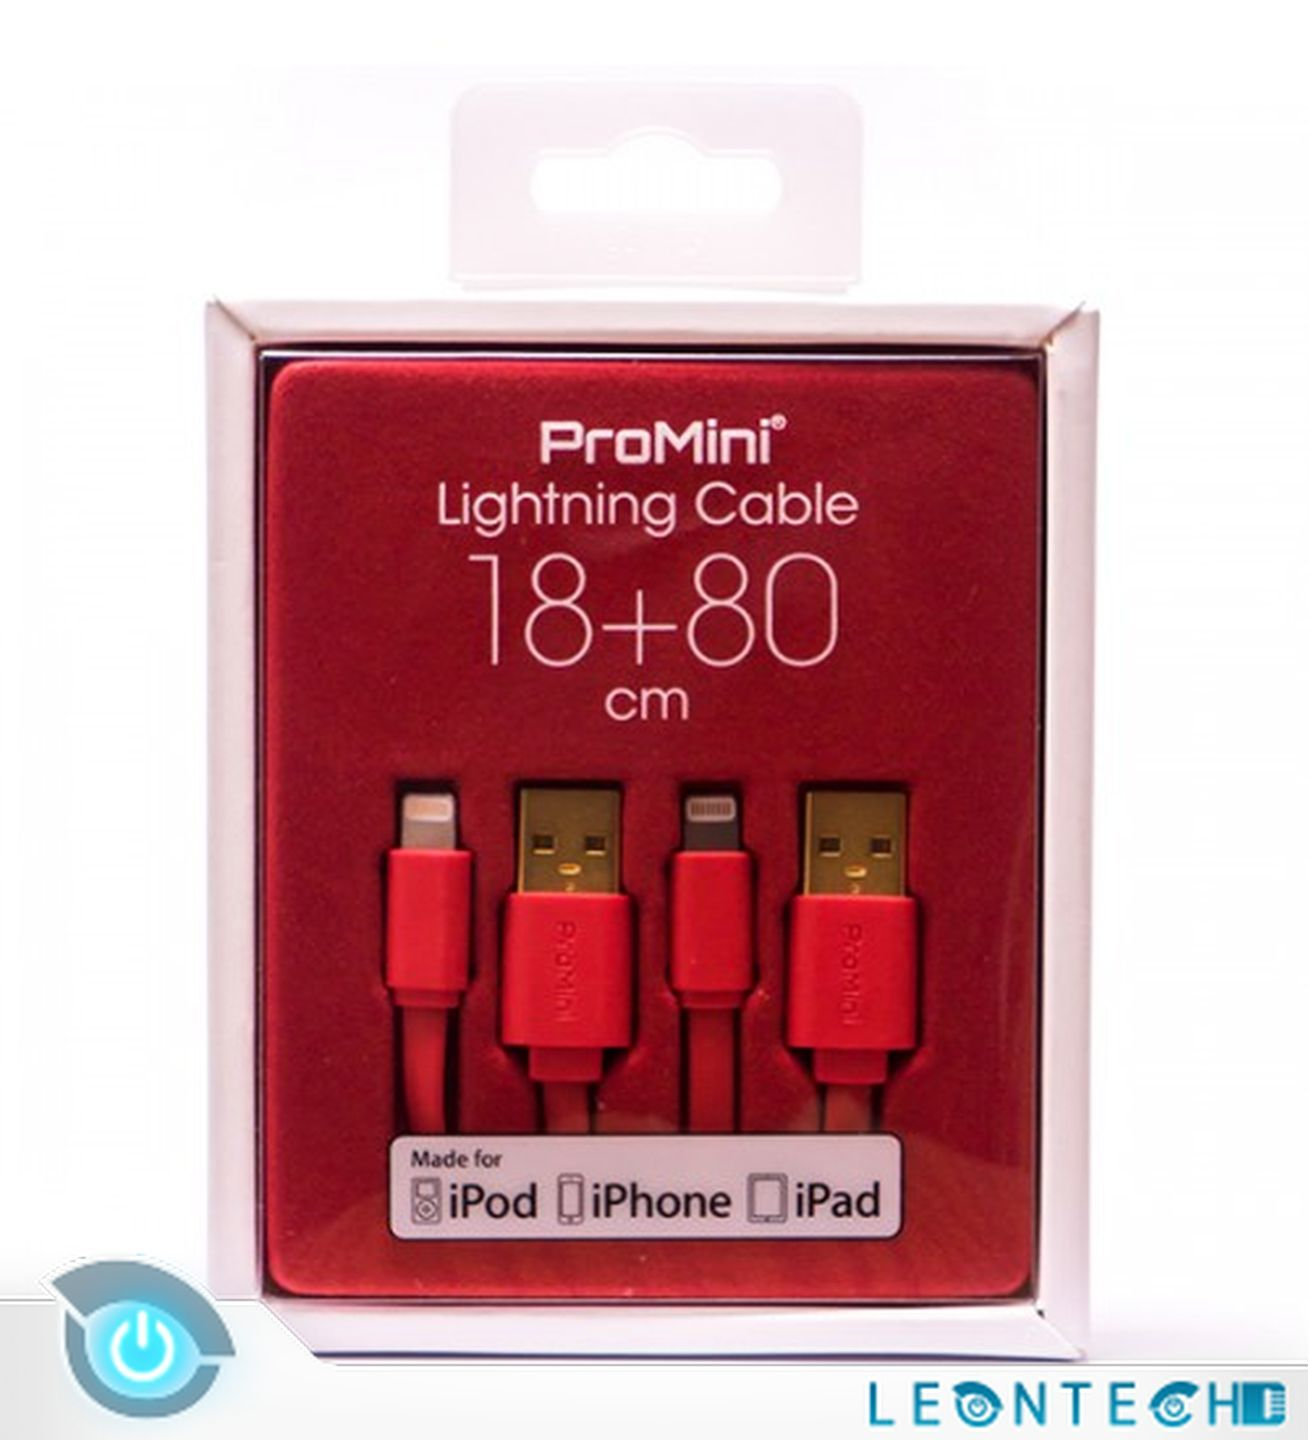 18n80cm_lightningcable_box_front-500x550_result.jpg